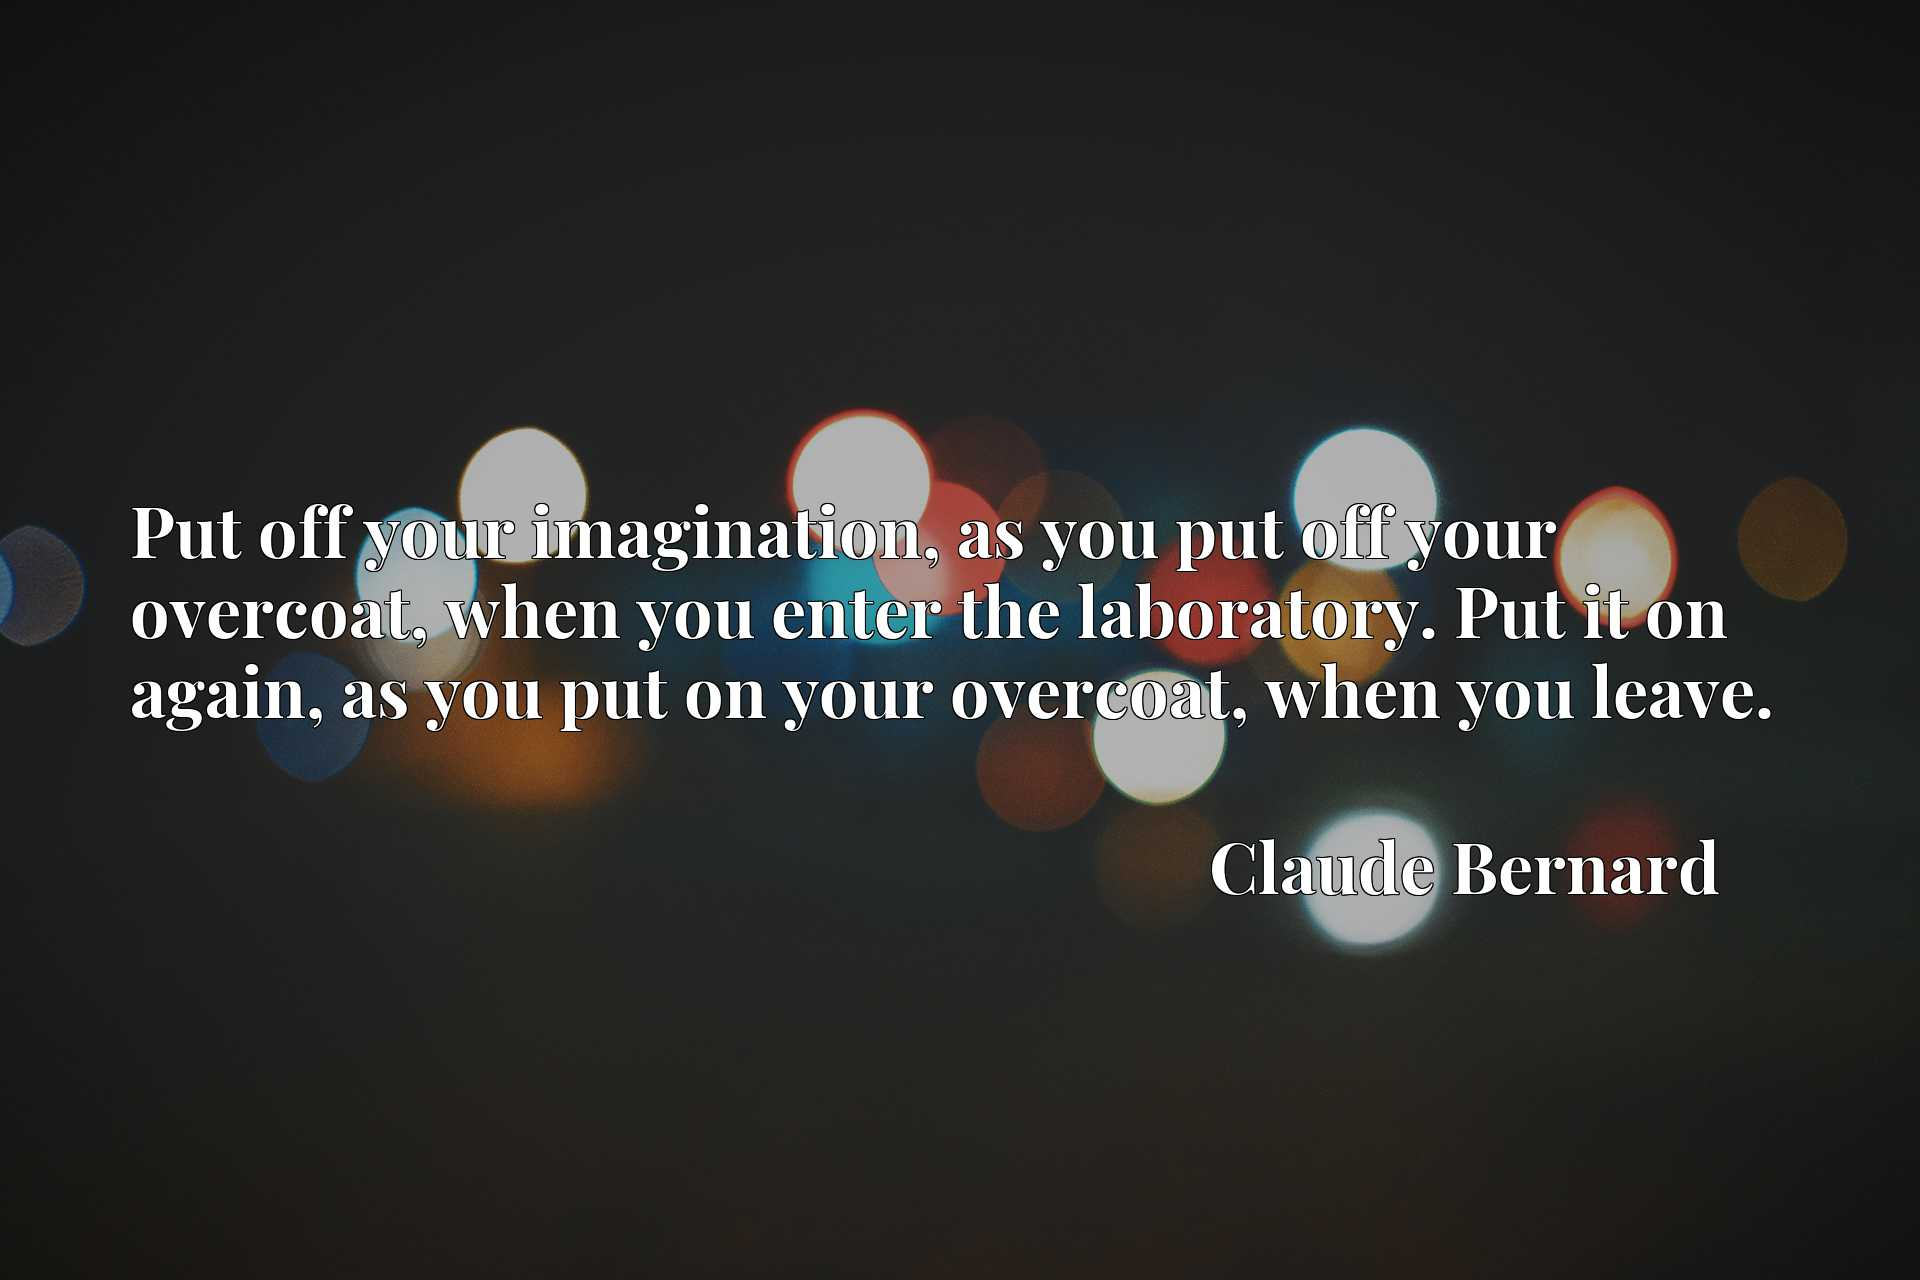 Quote Picture :Put off your imagination, as you put off your overcoat, when you enter the laboratory. Put it on again, as you put on your overcoat, when you leave.